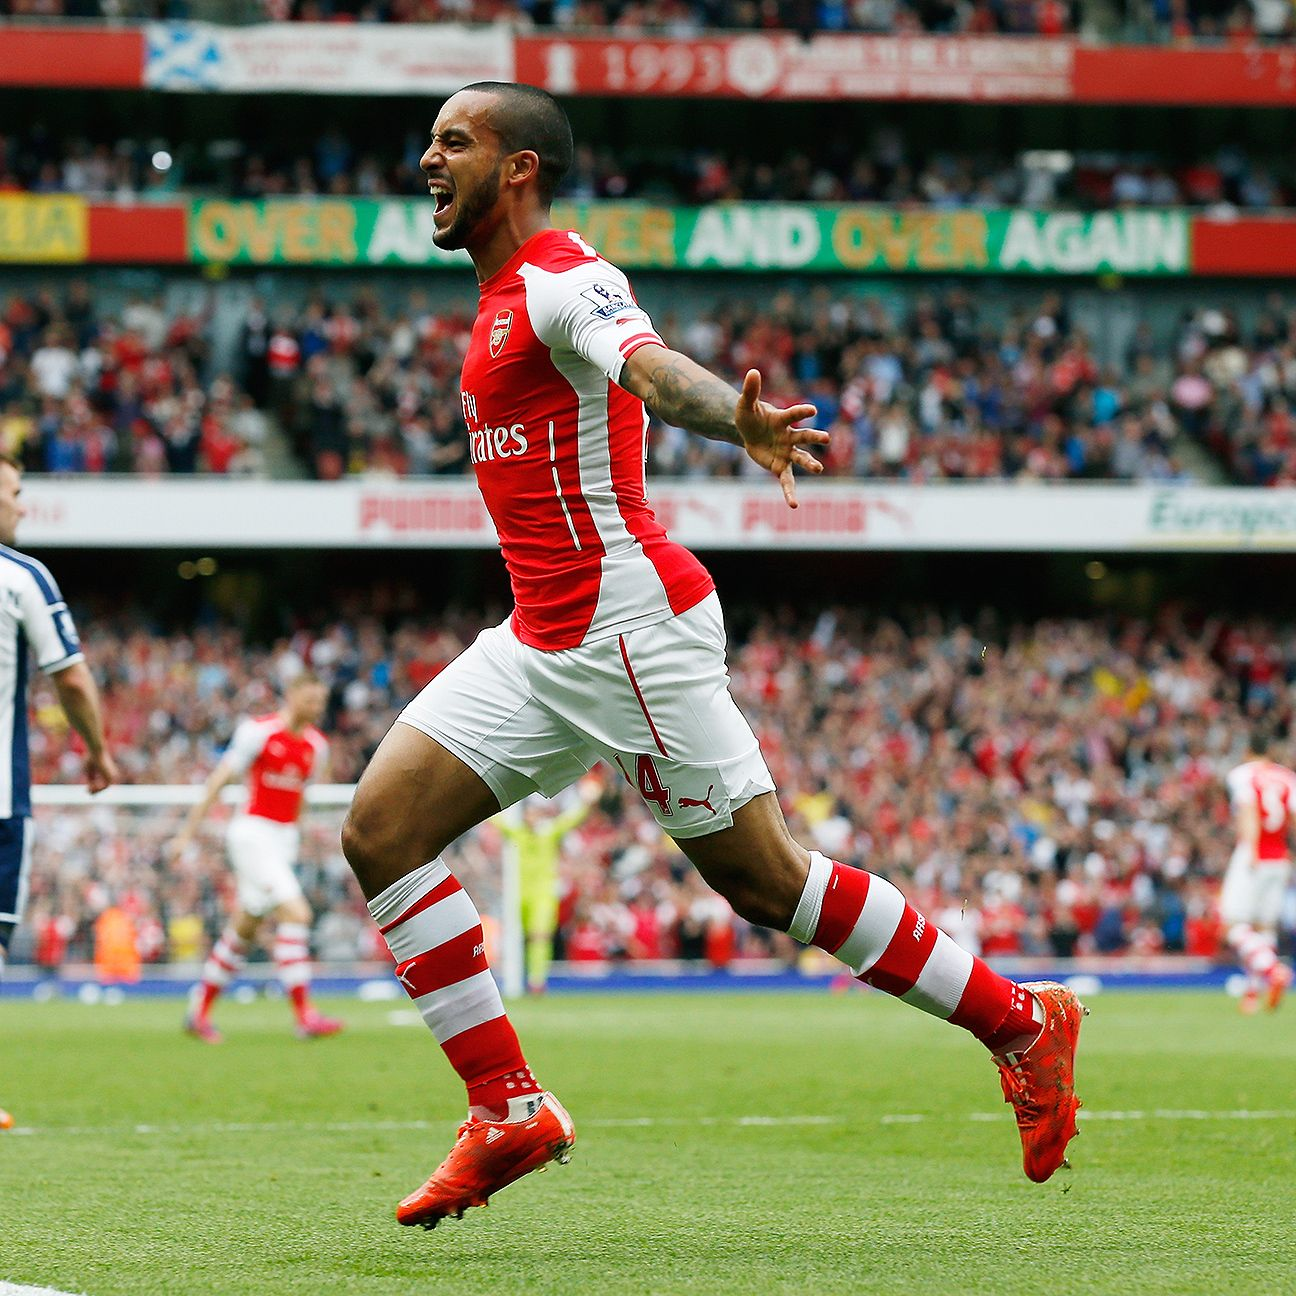 Theo Walcott's final day hat trick scored big for fantasy owners.